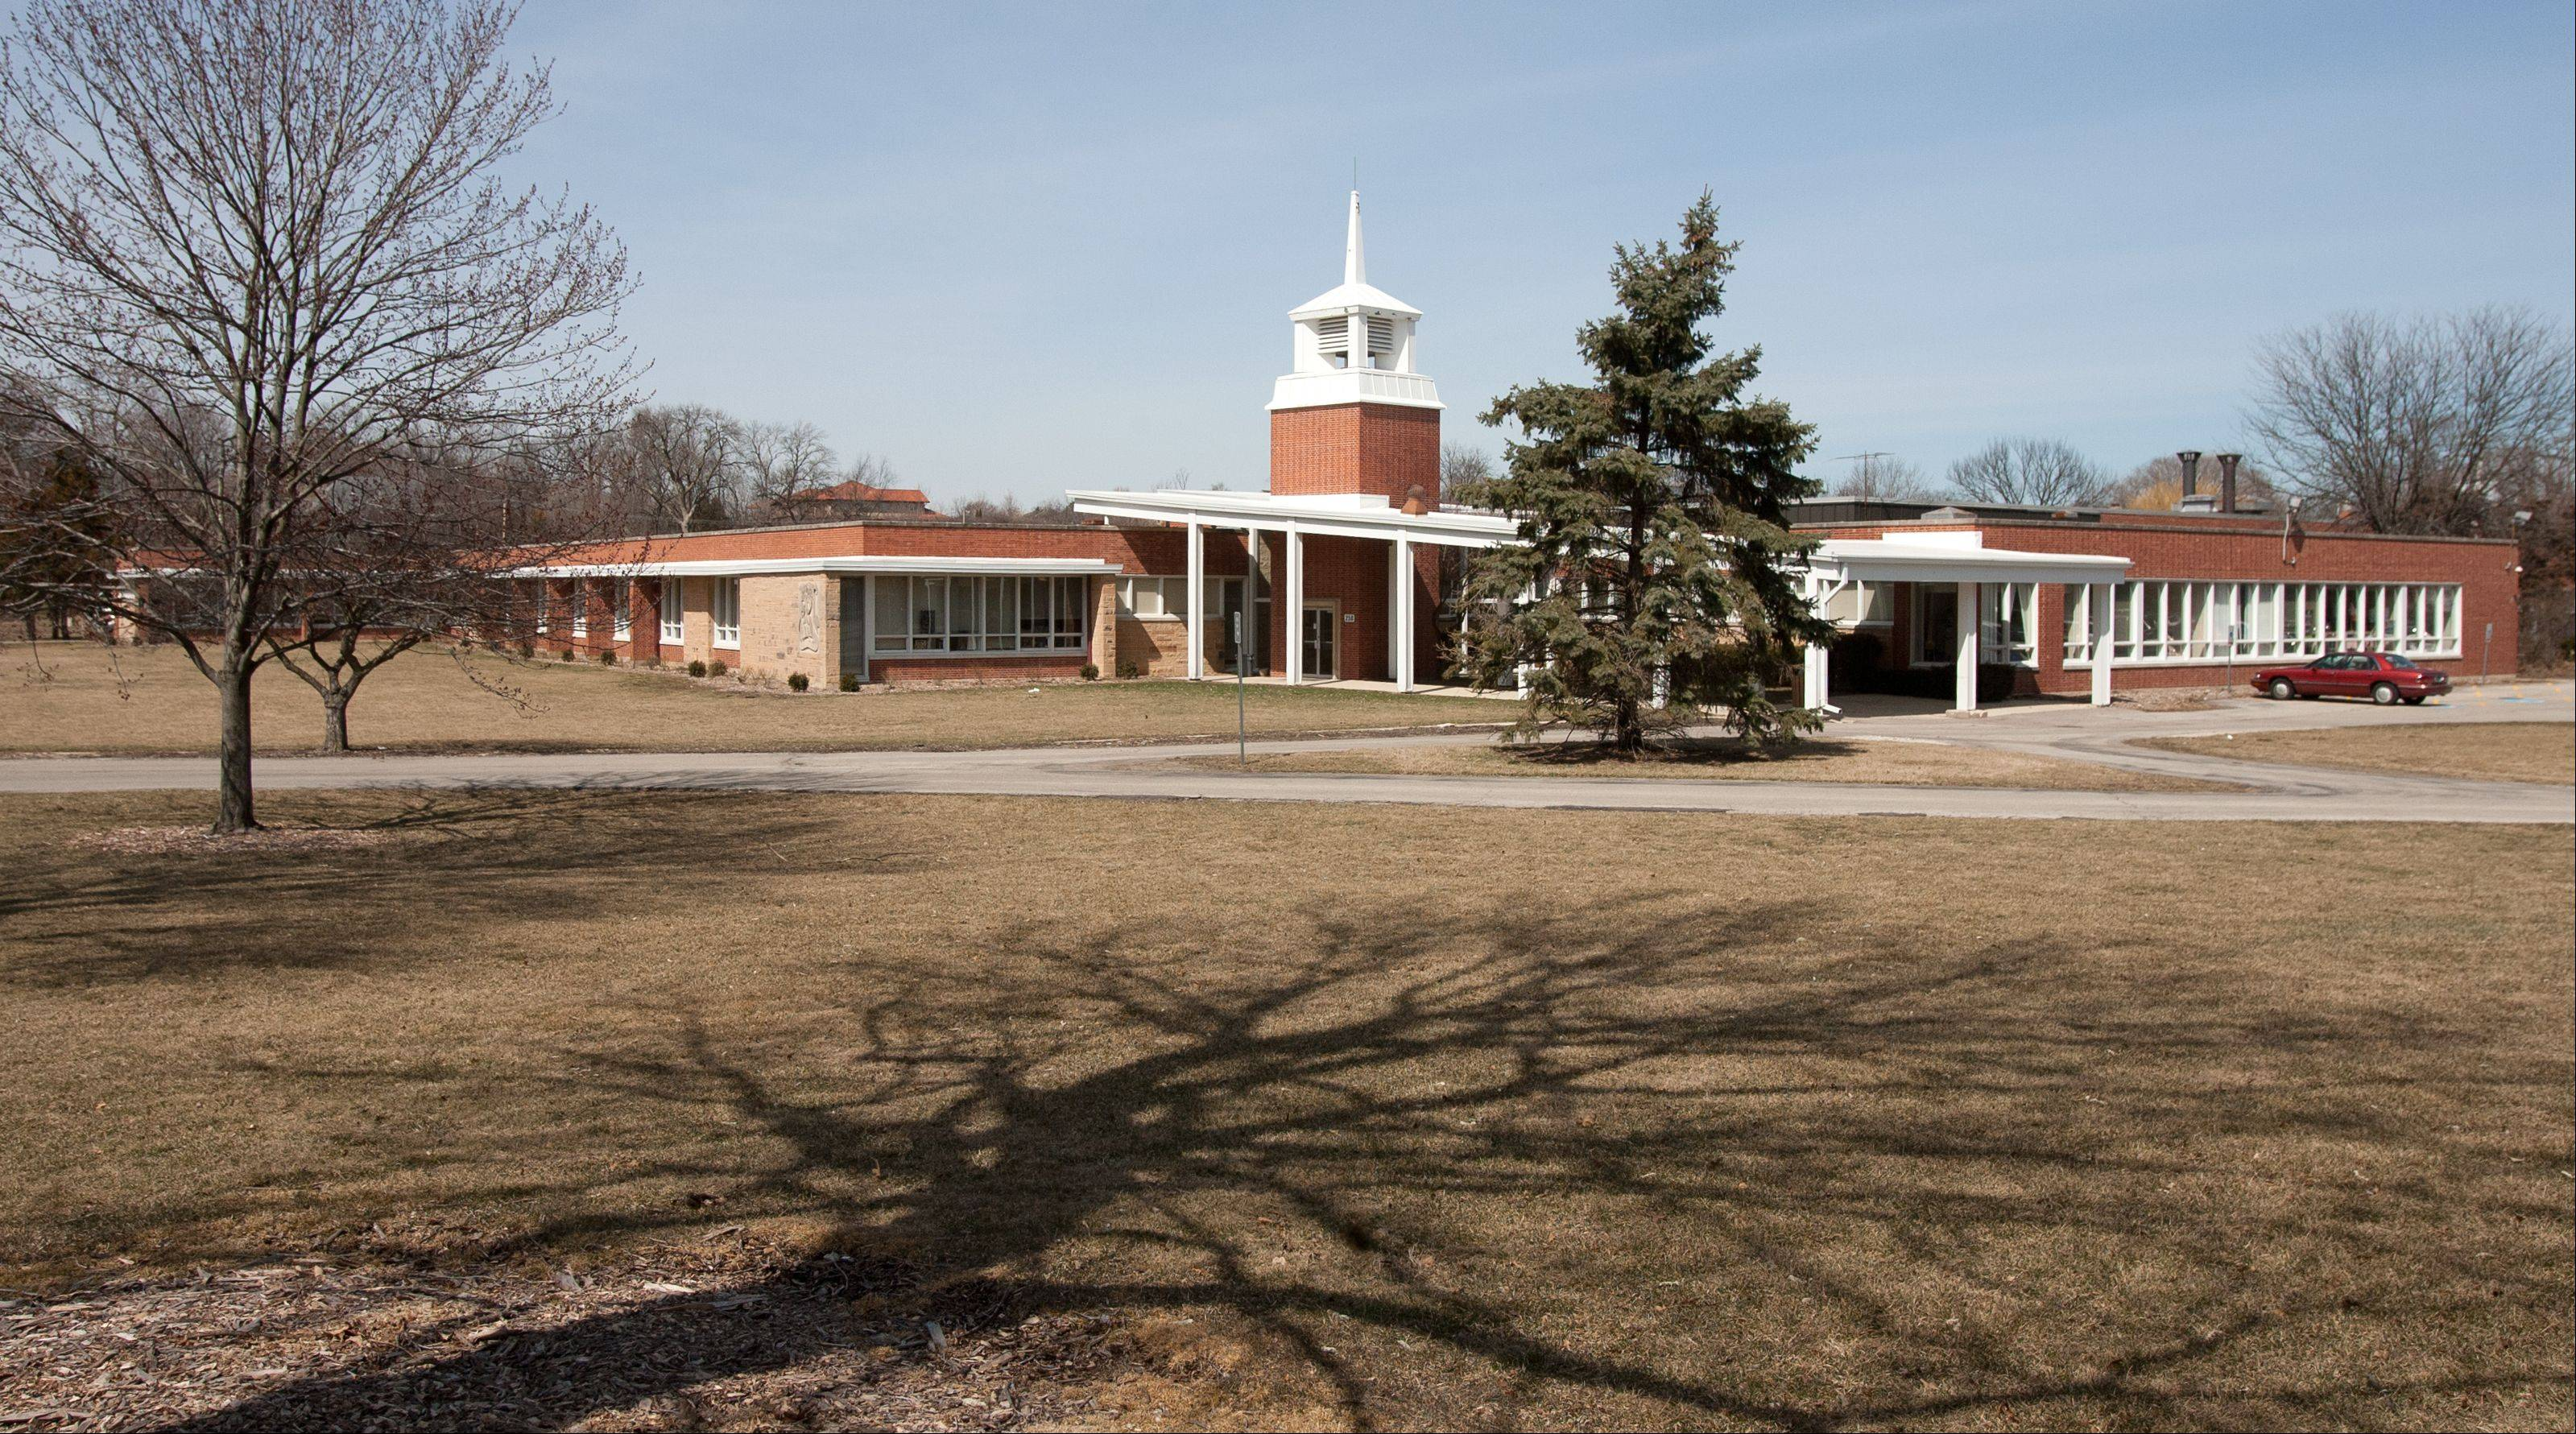 The Glen Ellyn School District 41 board plans to make a formal offer to buy Wheaton College's east campus property at 1825 College Ave., but so far, college officials have said the land isn't for sale.